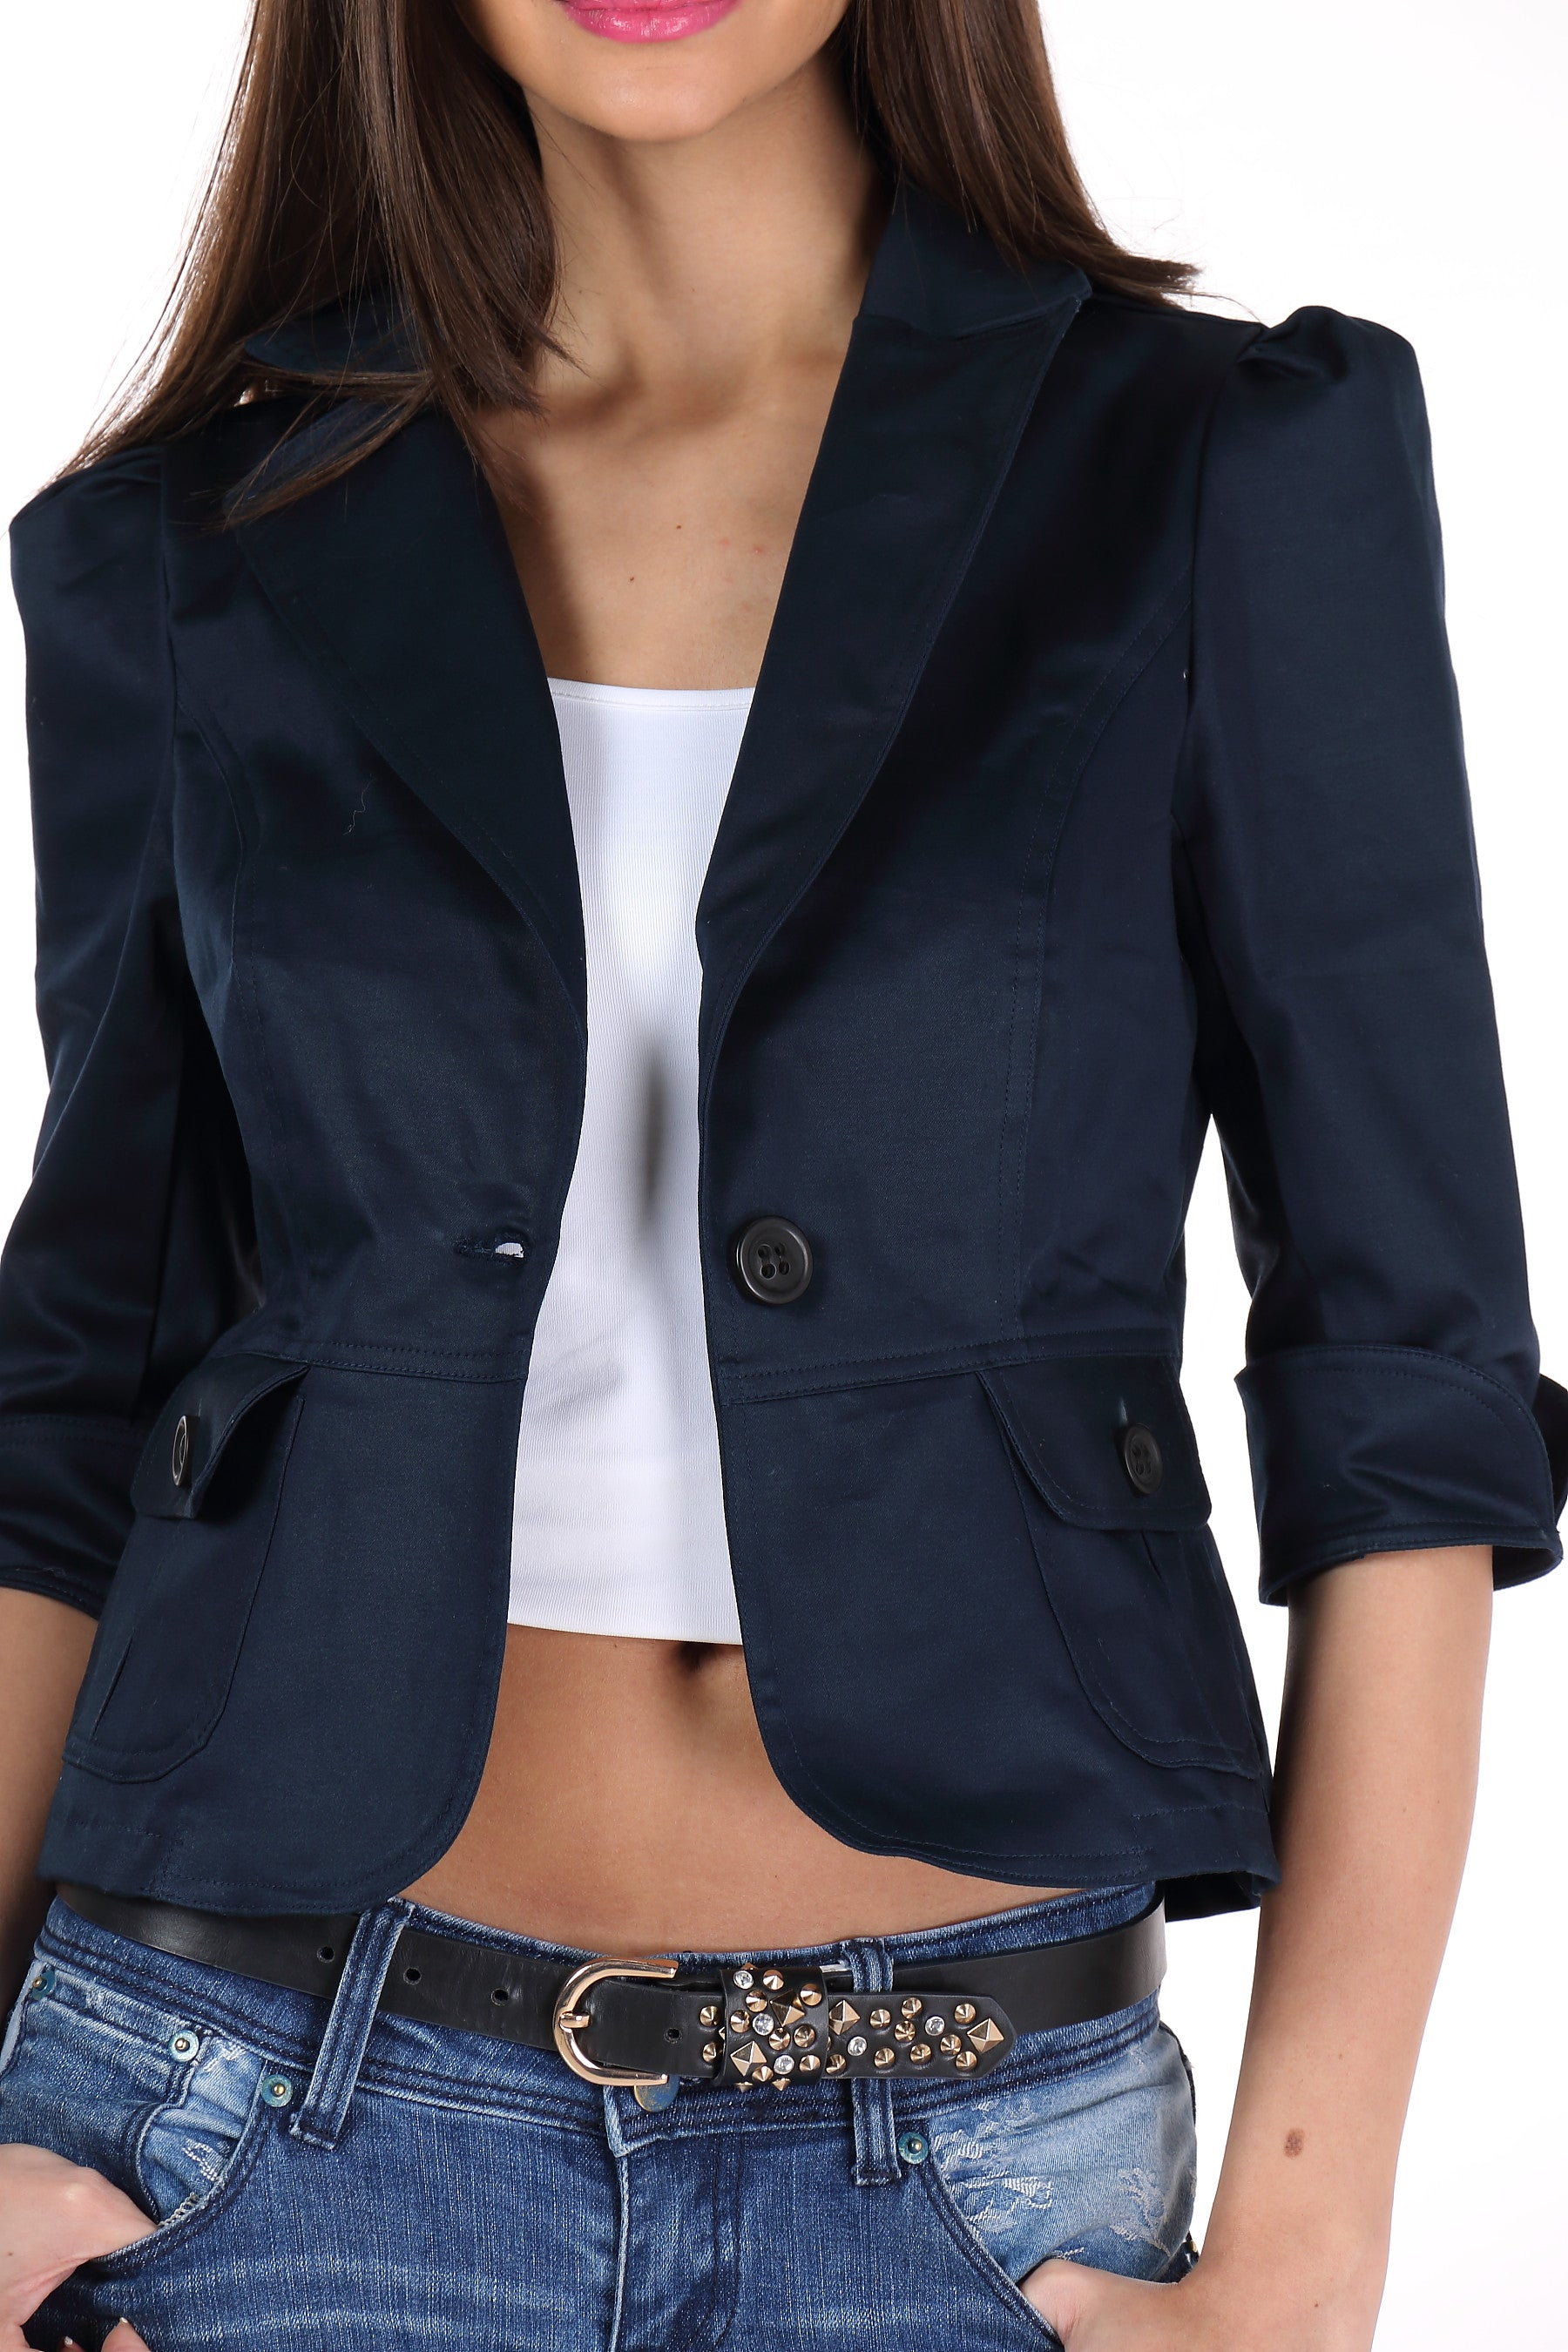 The Classic Jacket in Dark Blue Close Up